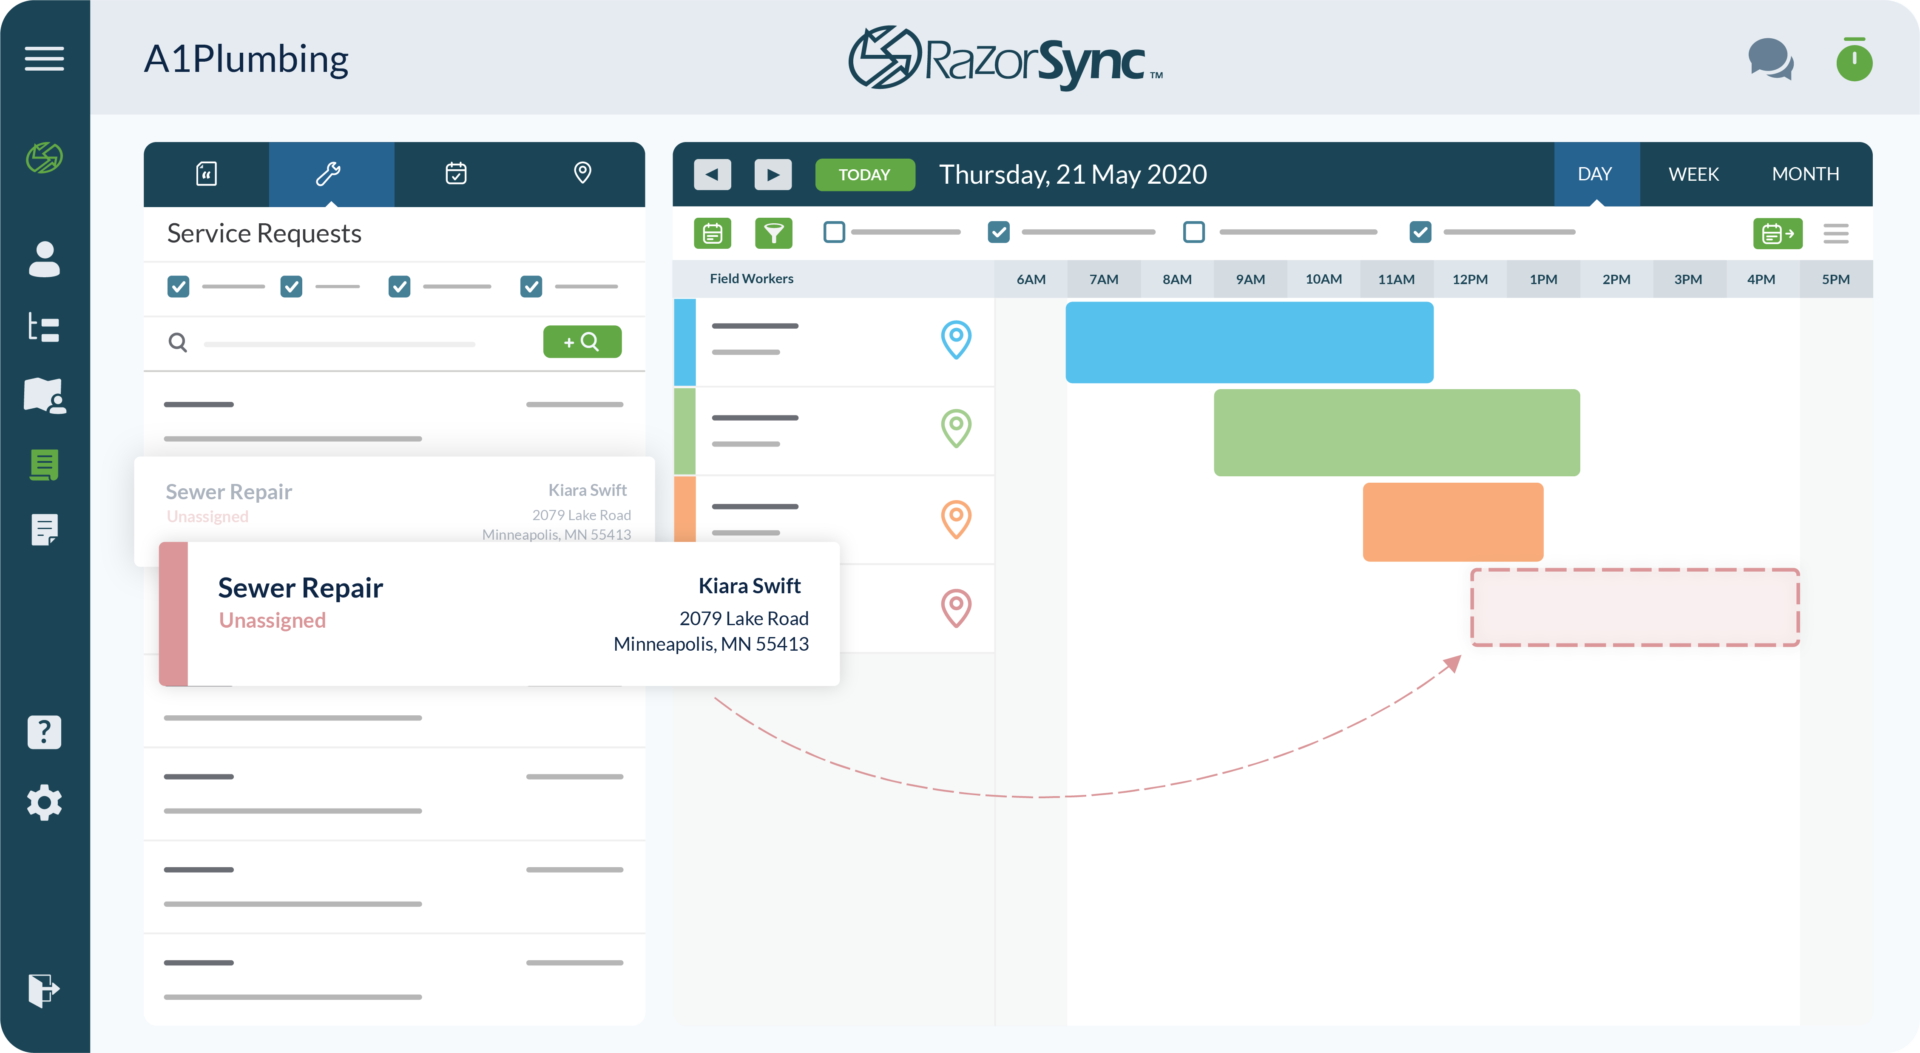 razorsync app screen with service requests and calendar